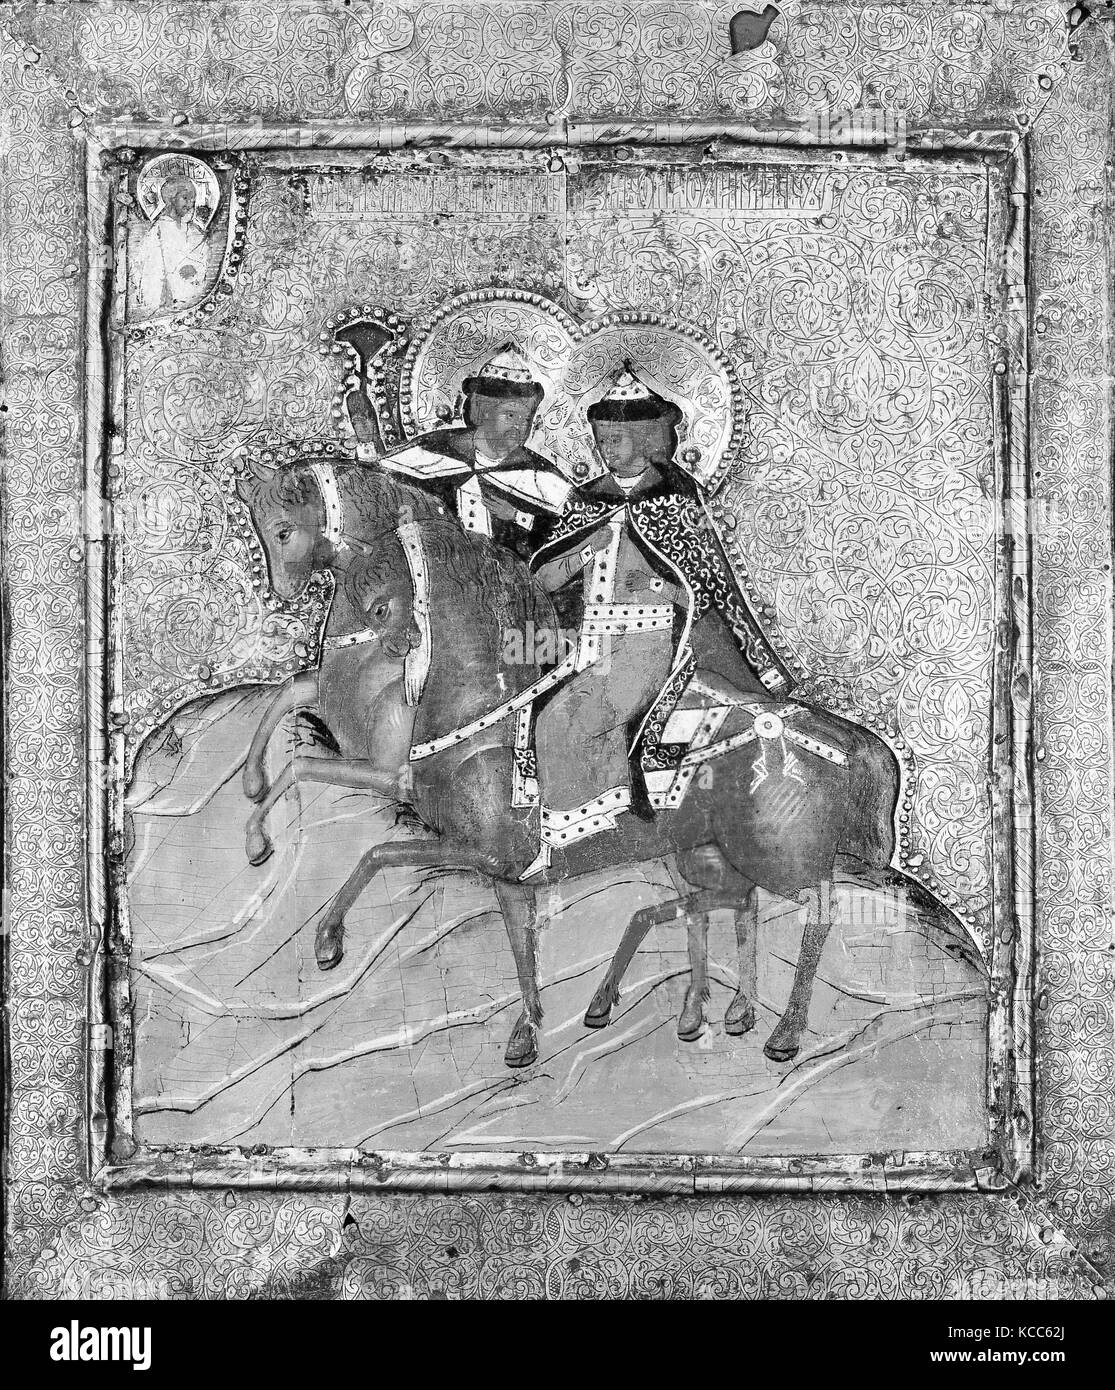 Saints Boris and Gleb, Tempera on wood, silver and silver-gilt cover, 12 1/2 x 10 5/8 in. (31.8 x 27 cm), Paintings, - Stock Image